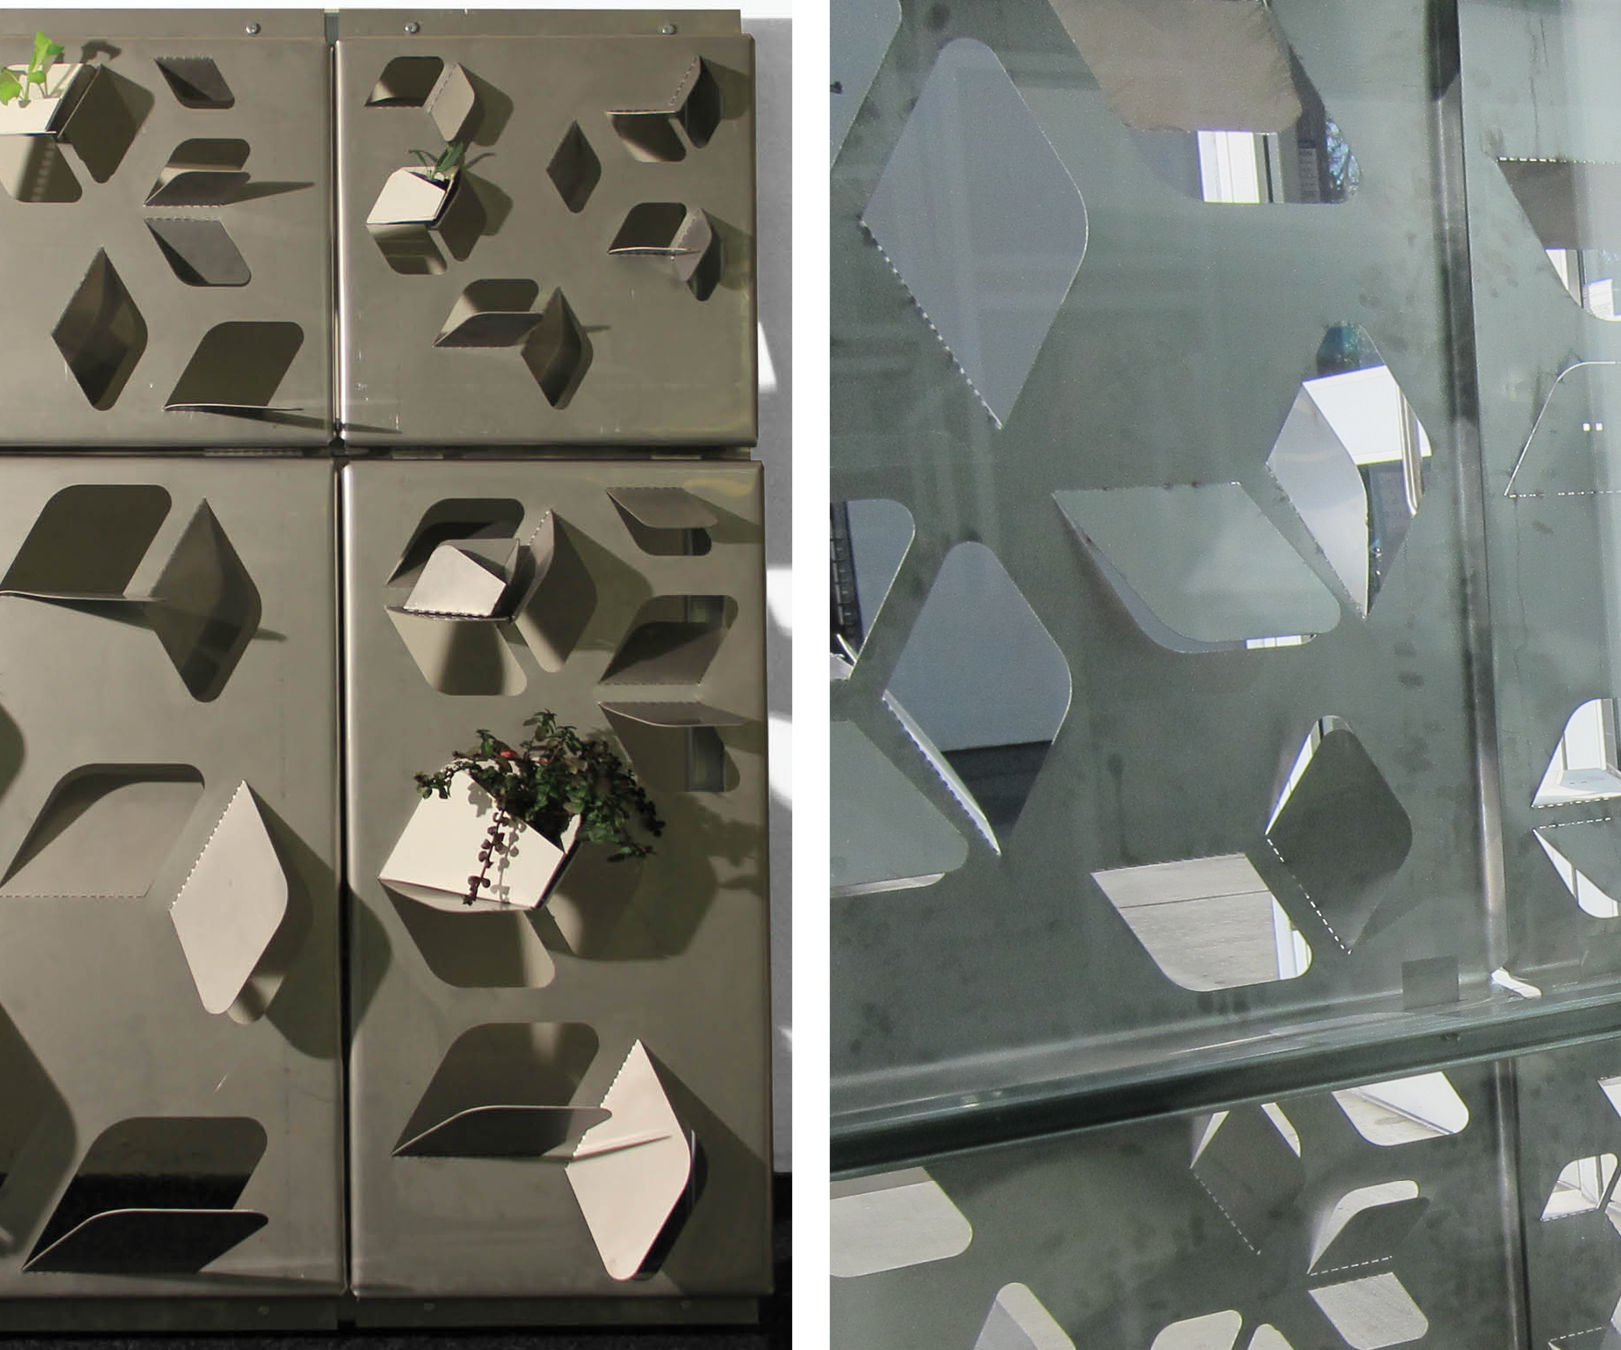 Architecture In The Making: Learn To Grow / Grow To Learn Facade Prototype